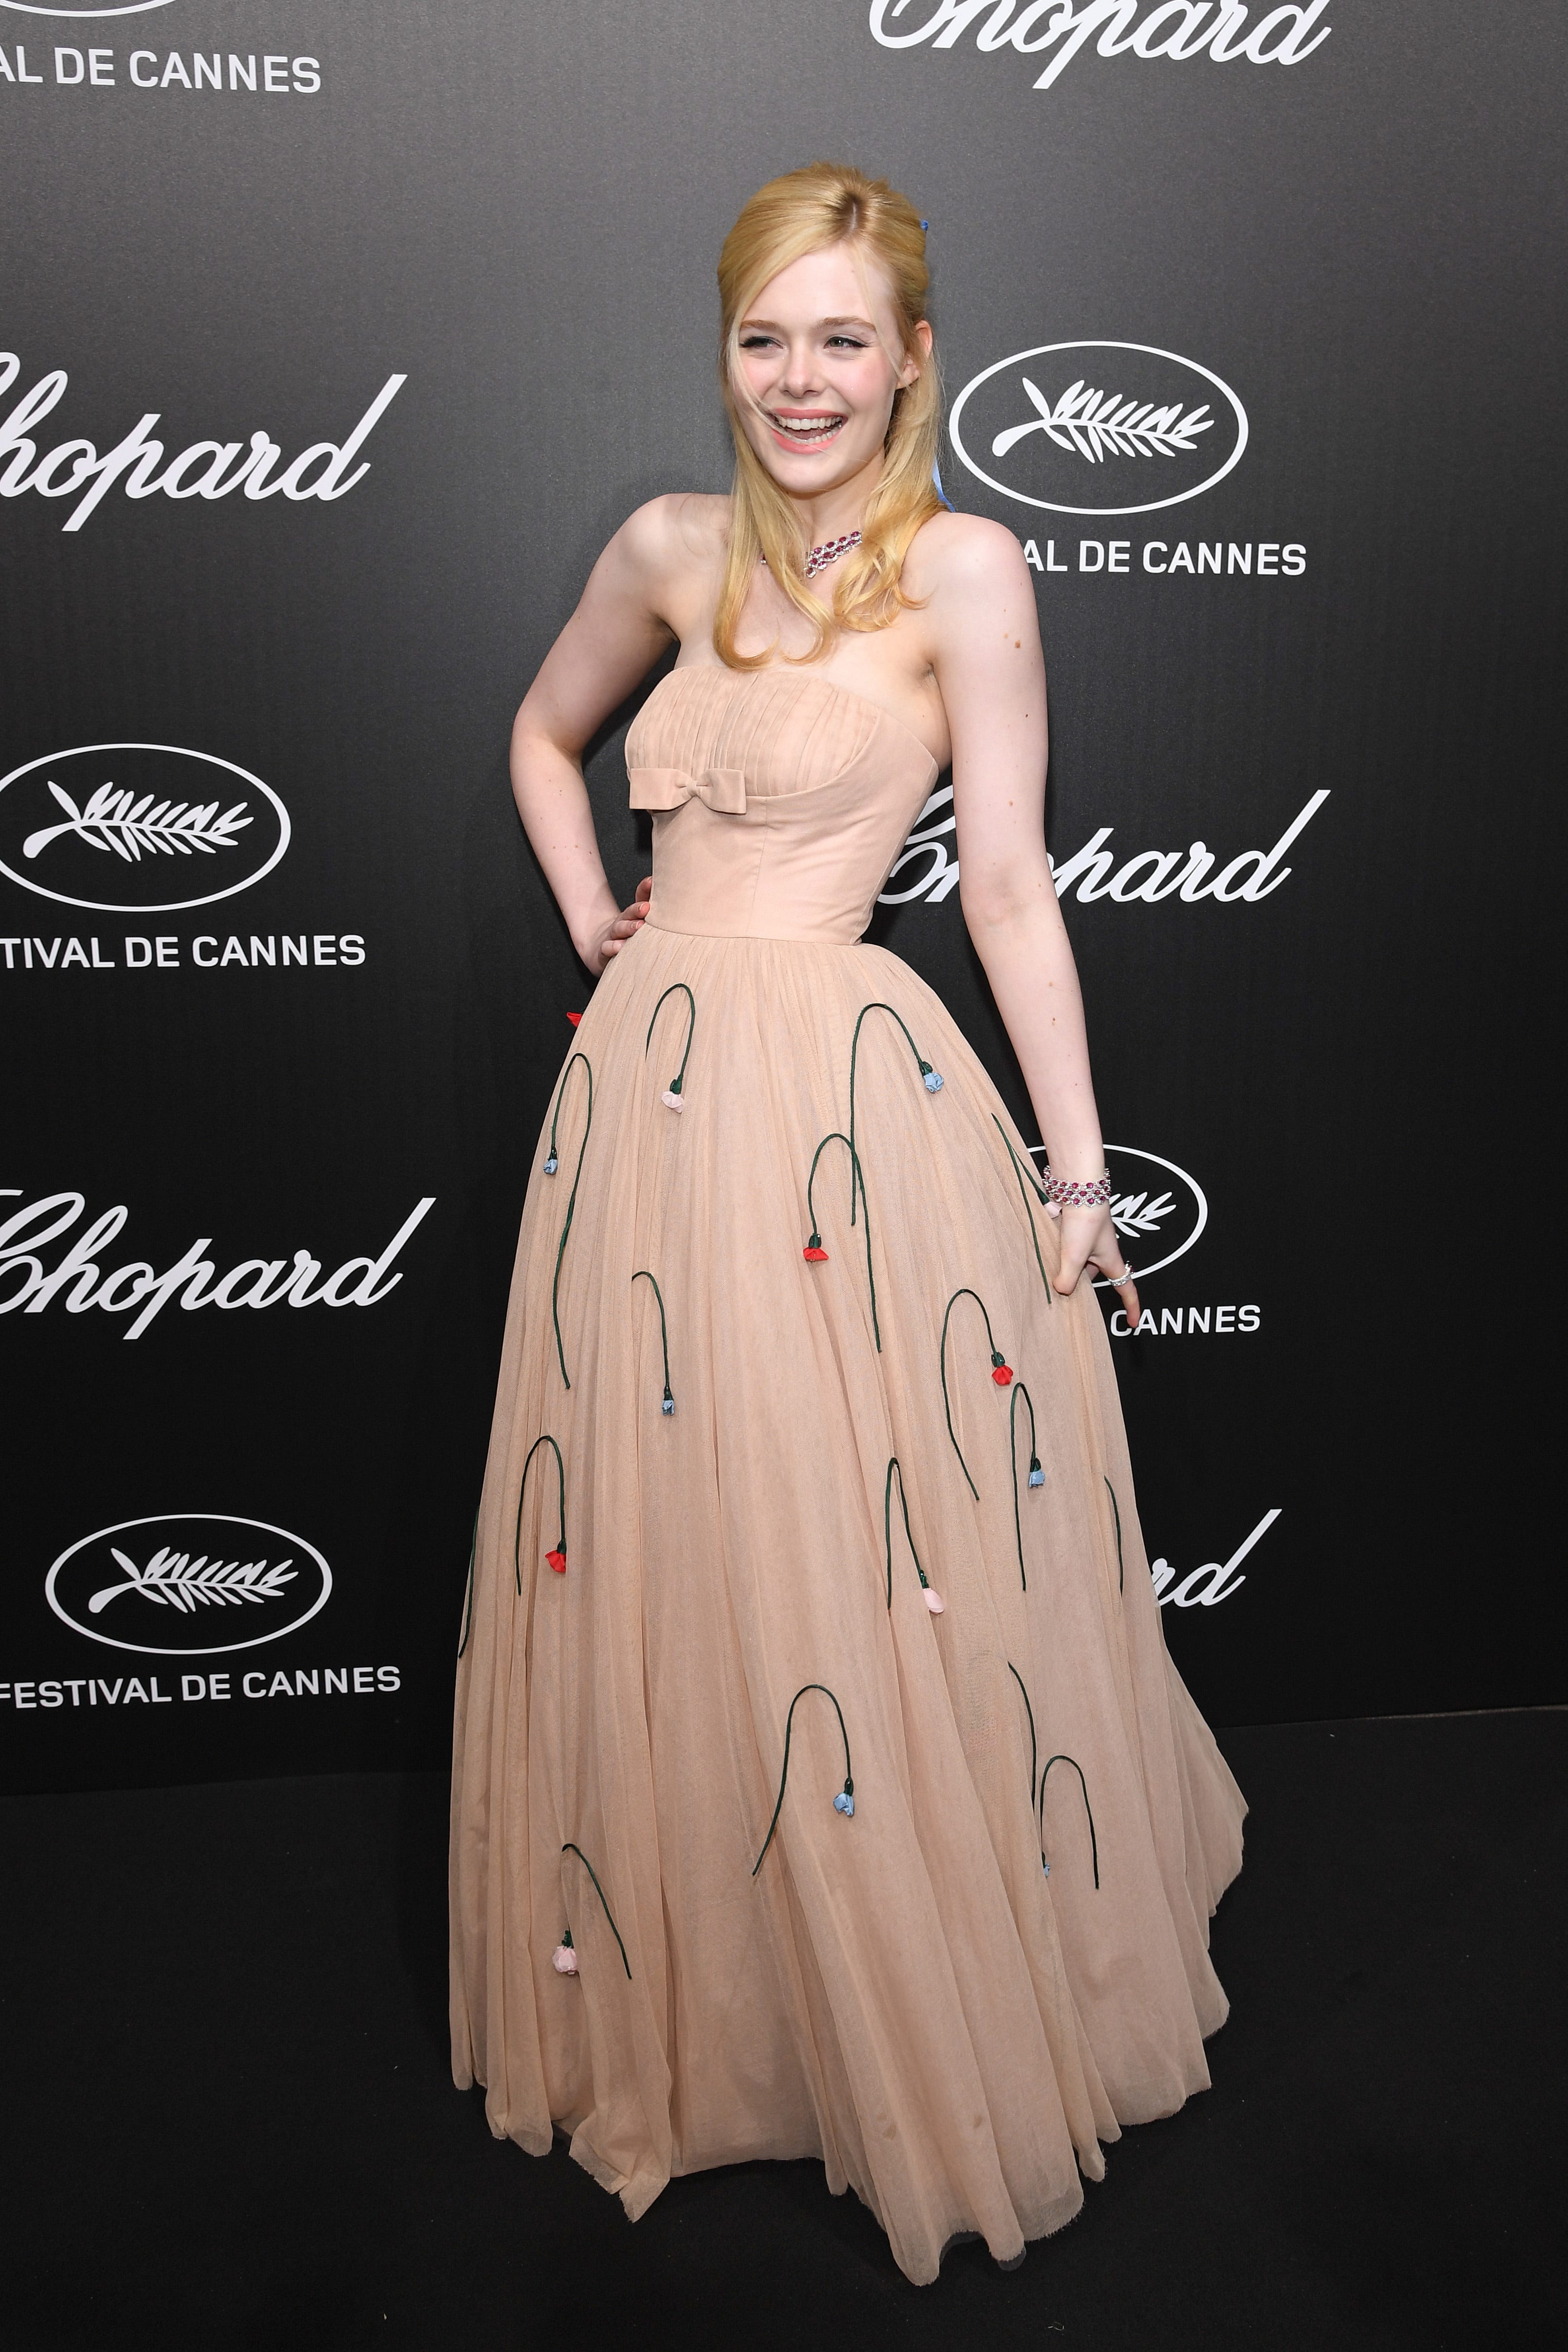 Dress Too Tight Elle Fanning Faints At Cannes Film Festival